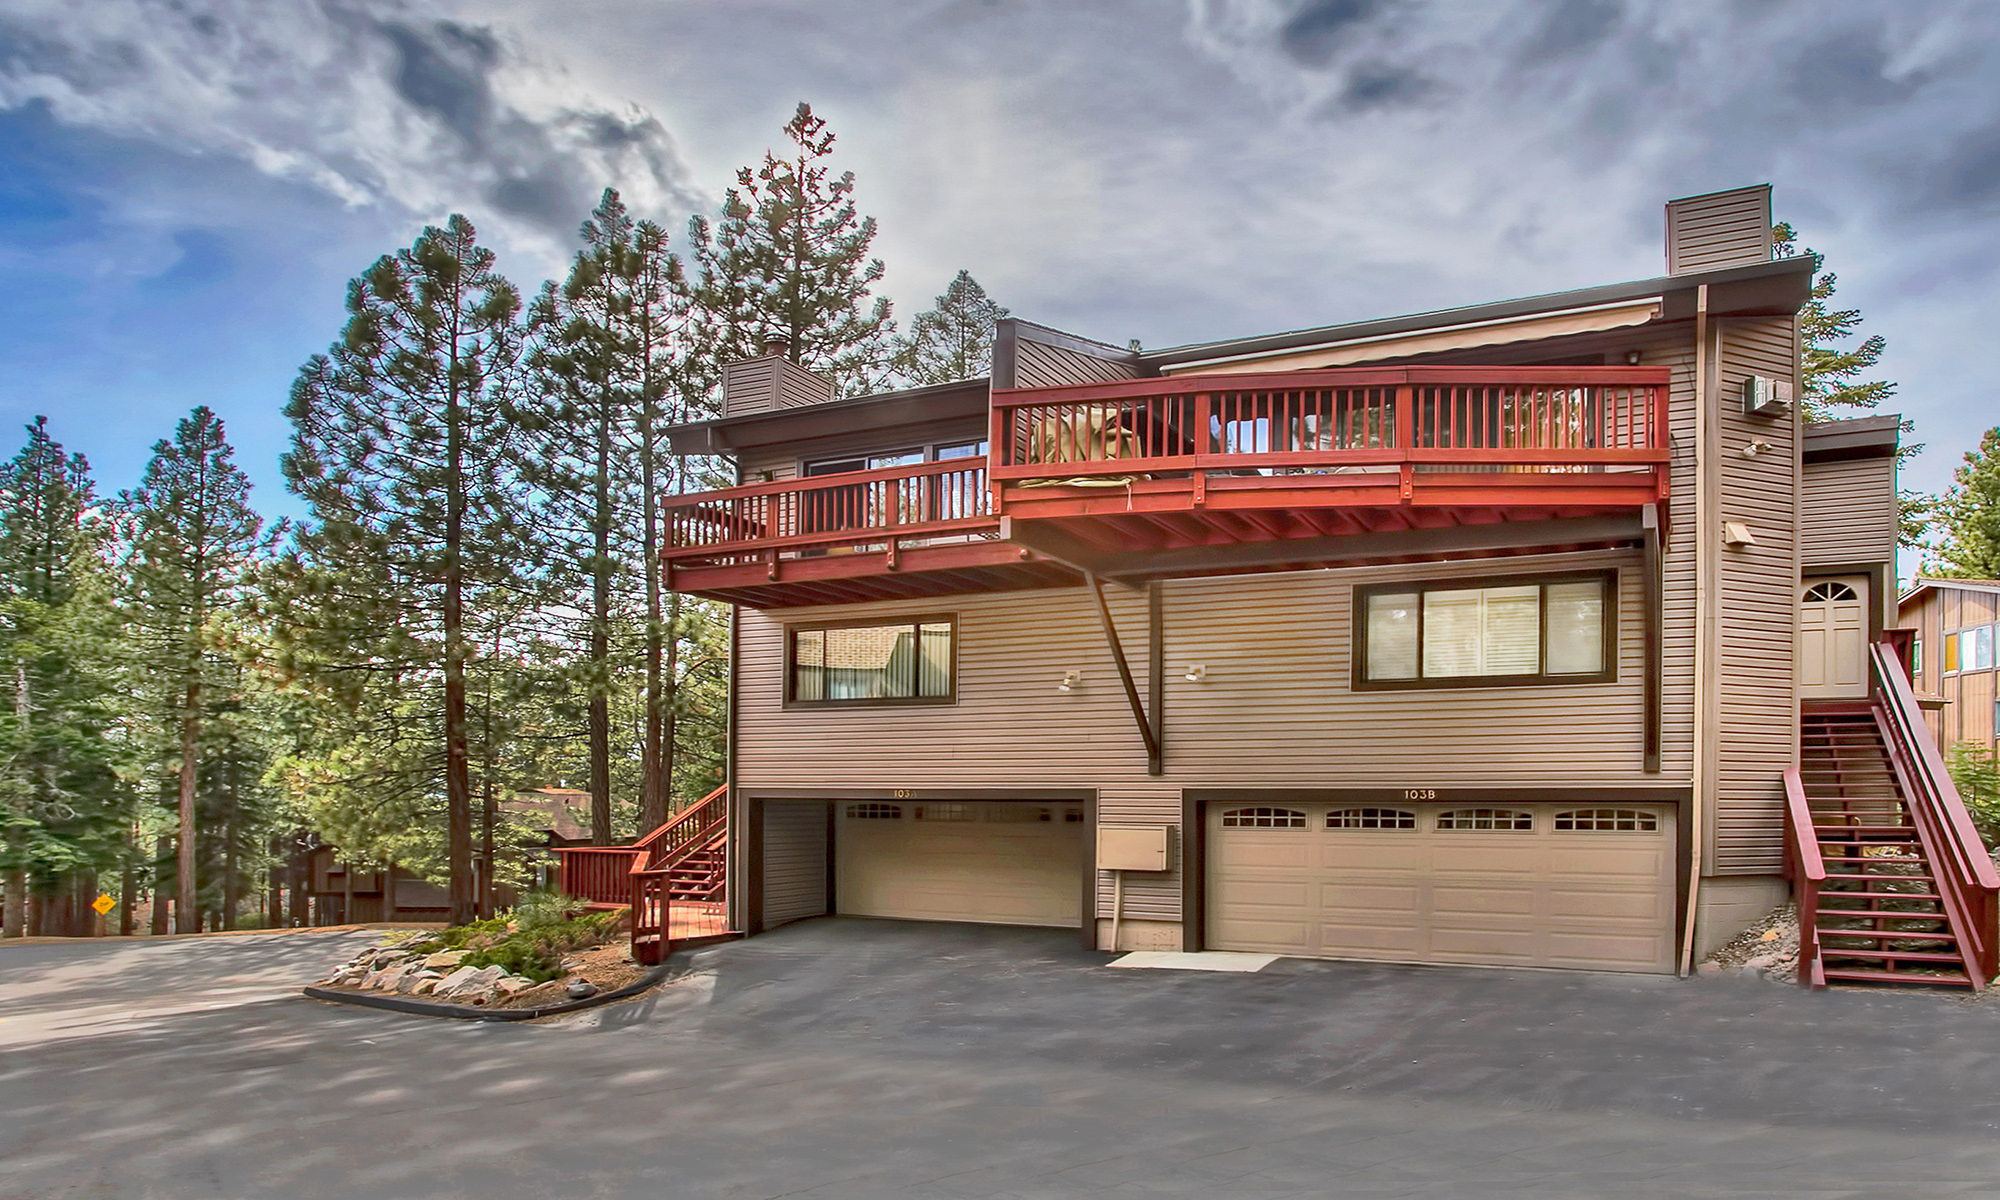 Townhouse for Sale at 103 N Rubicon Stateline, Nevada 89449 United States